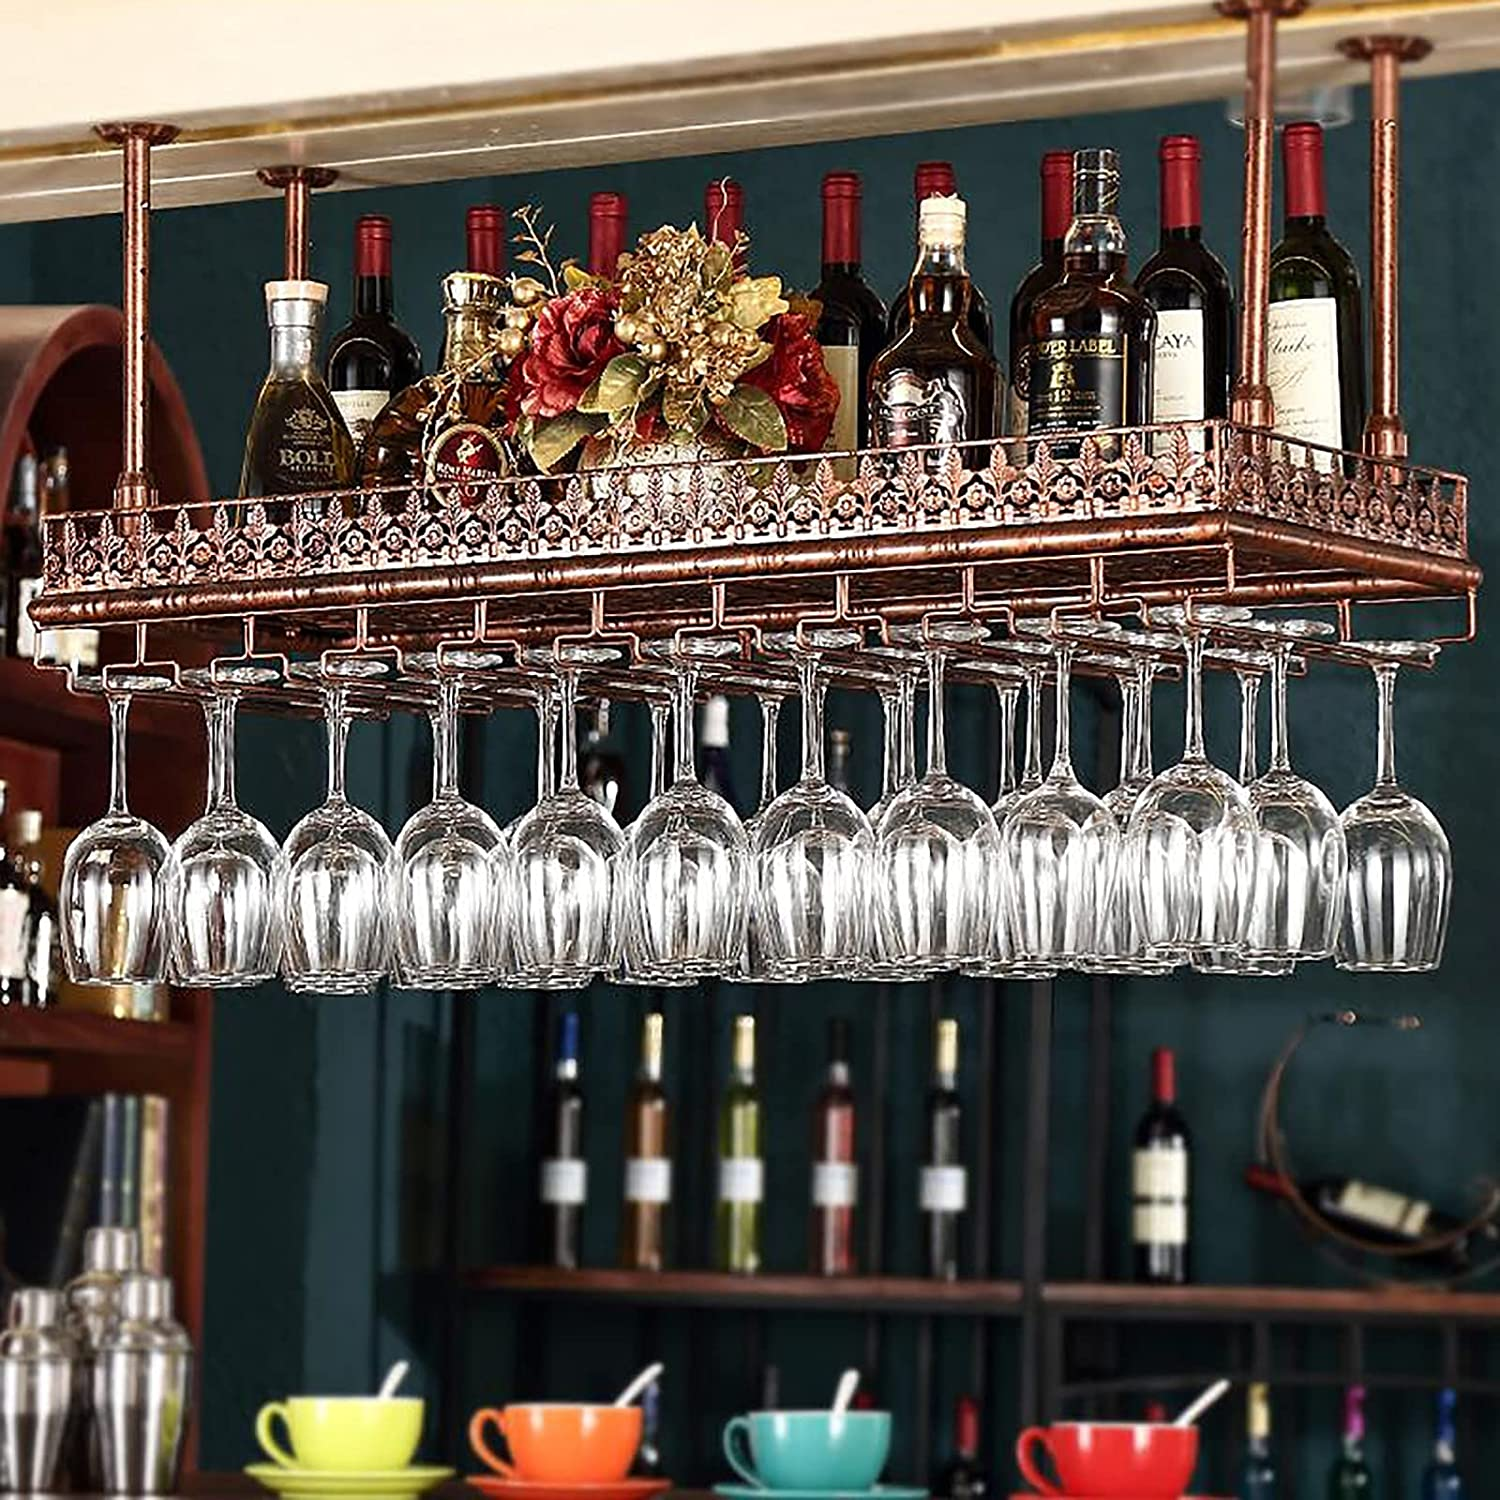 PWE-Adjustable A surprise price is depot realized Metal Ceiling Bar Wine Upsi Glass Rack Iron Retro